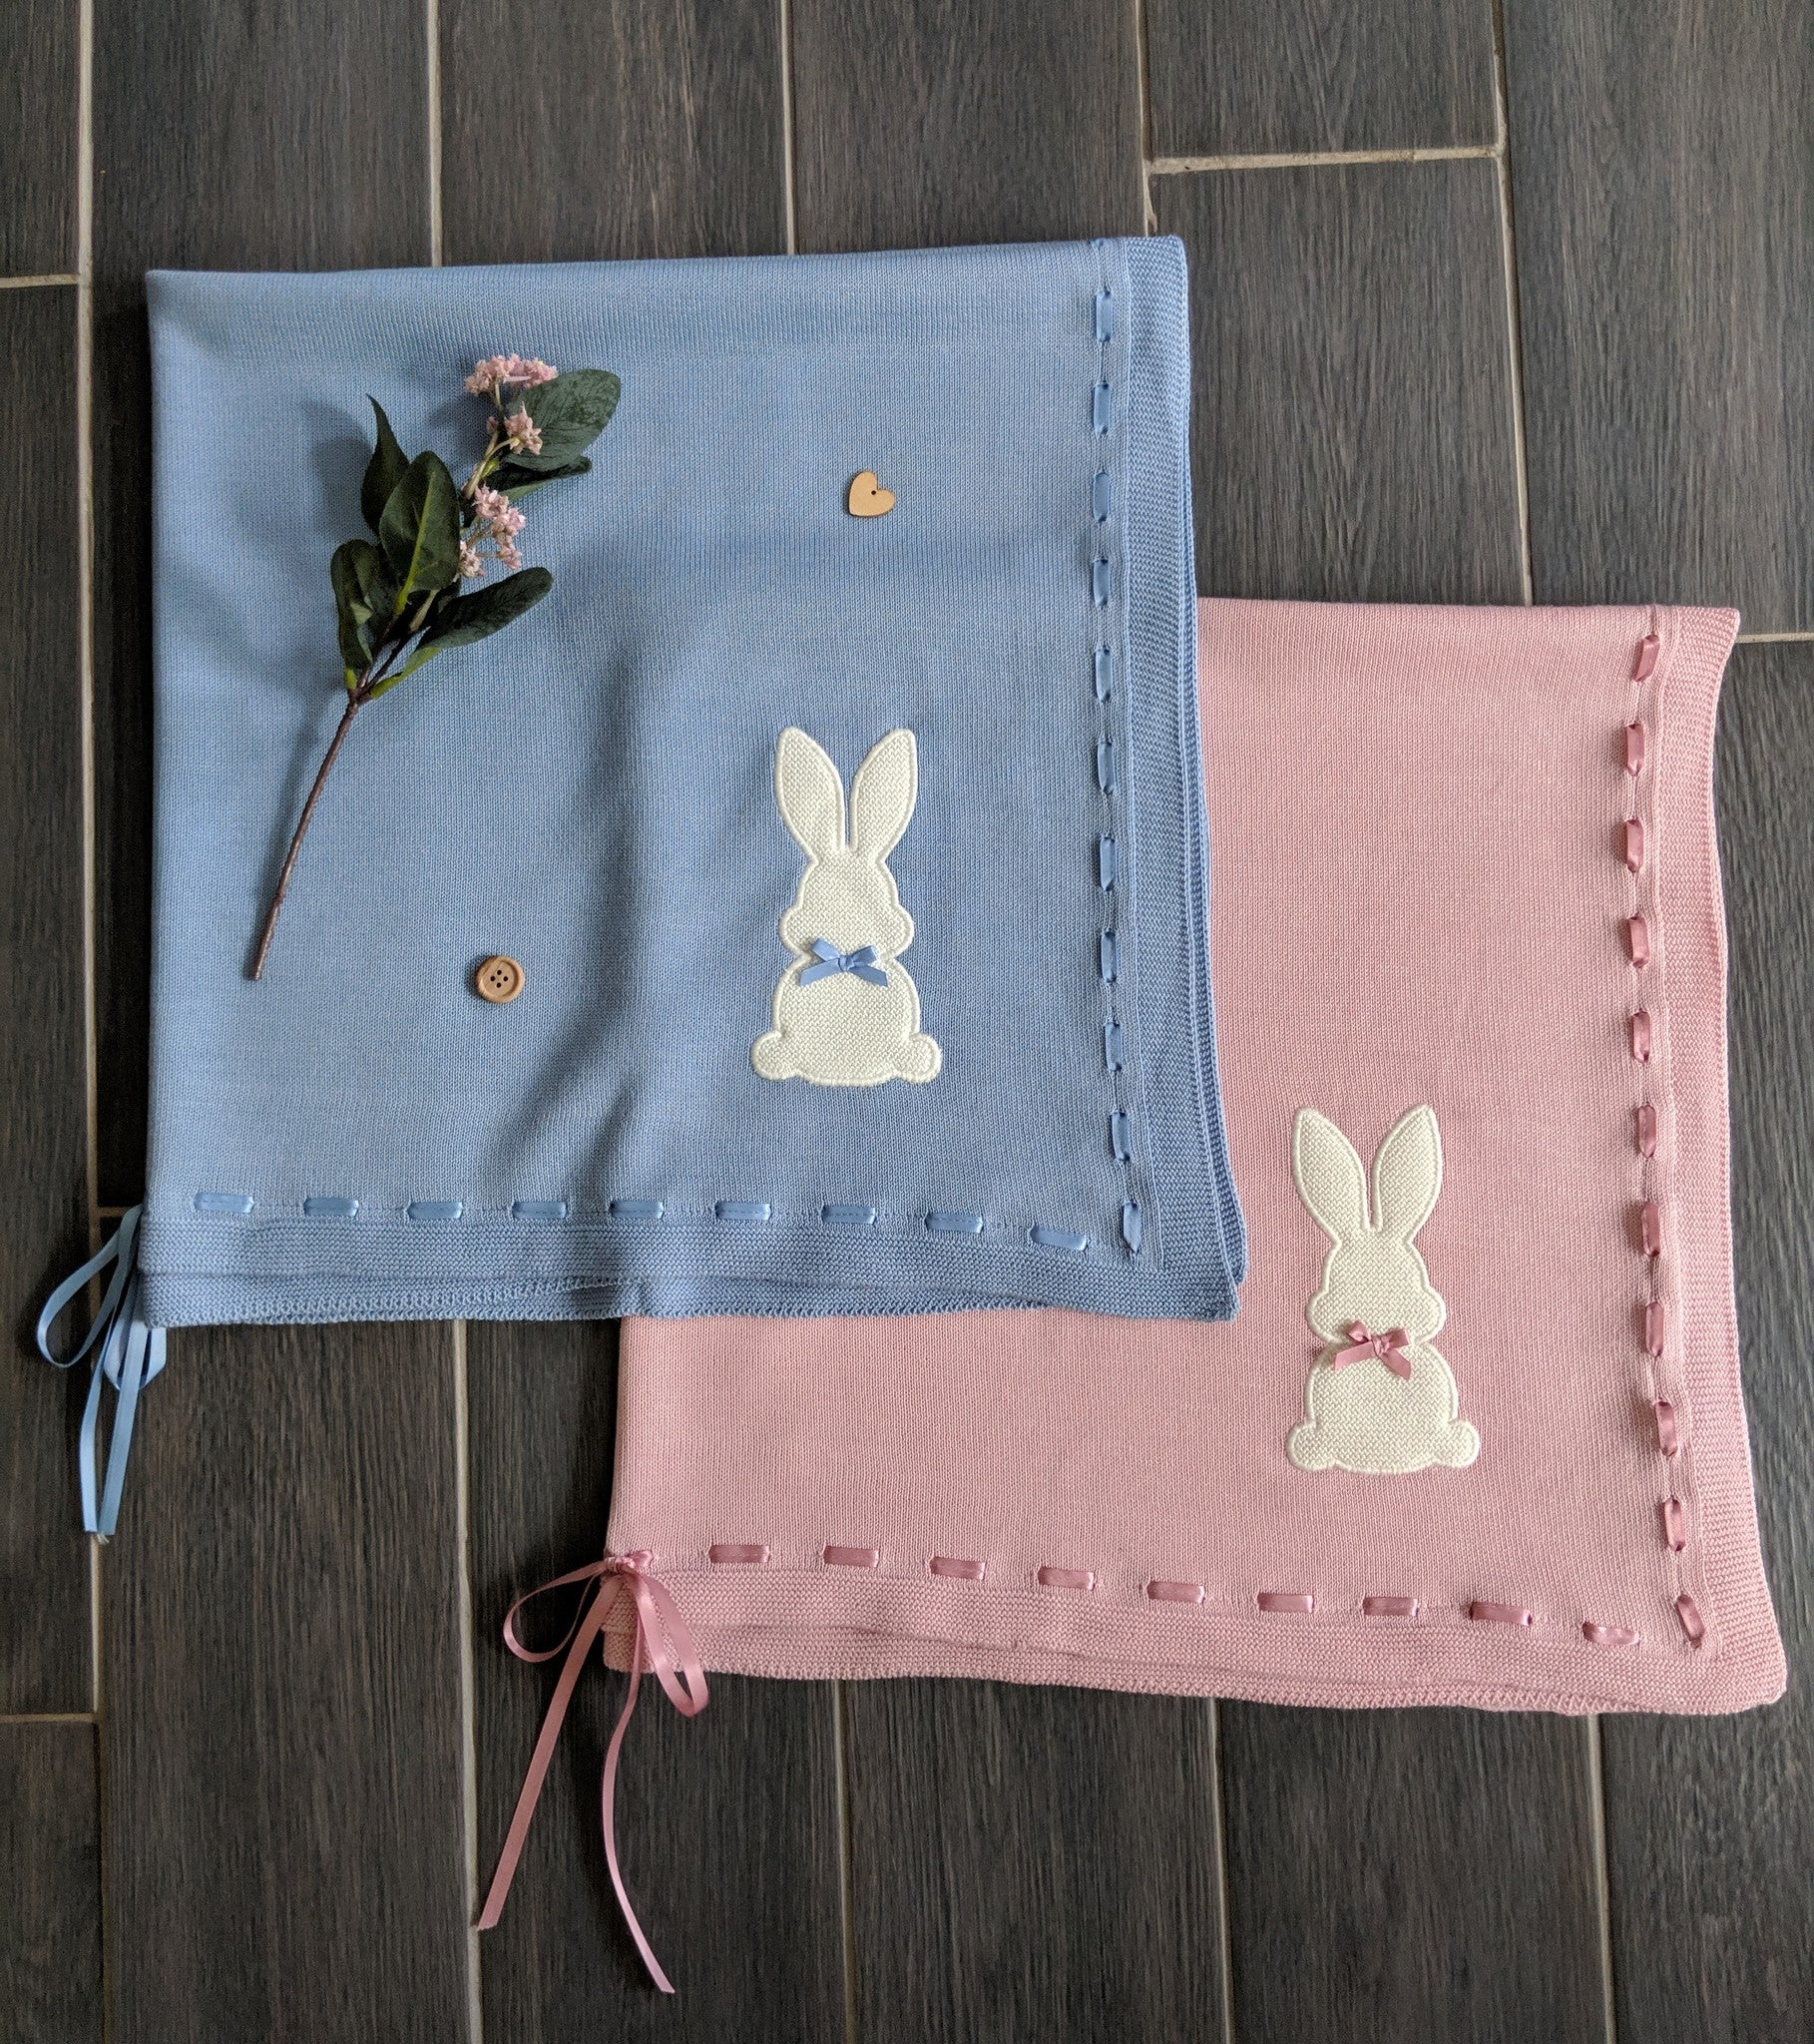 Beautiful baby shawls. Super find knit, perfect for spring/summer. Complete with bunny motif and monogram.